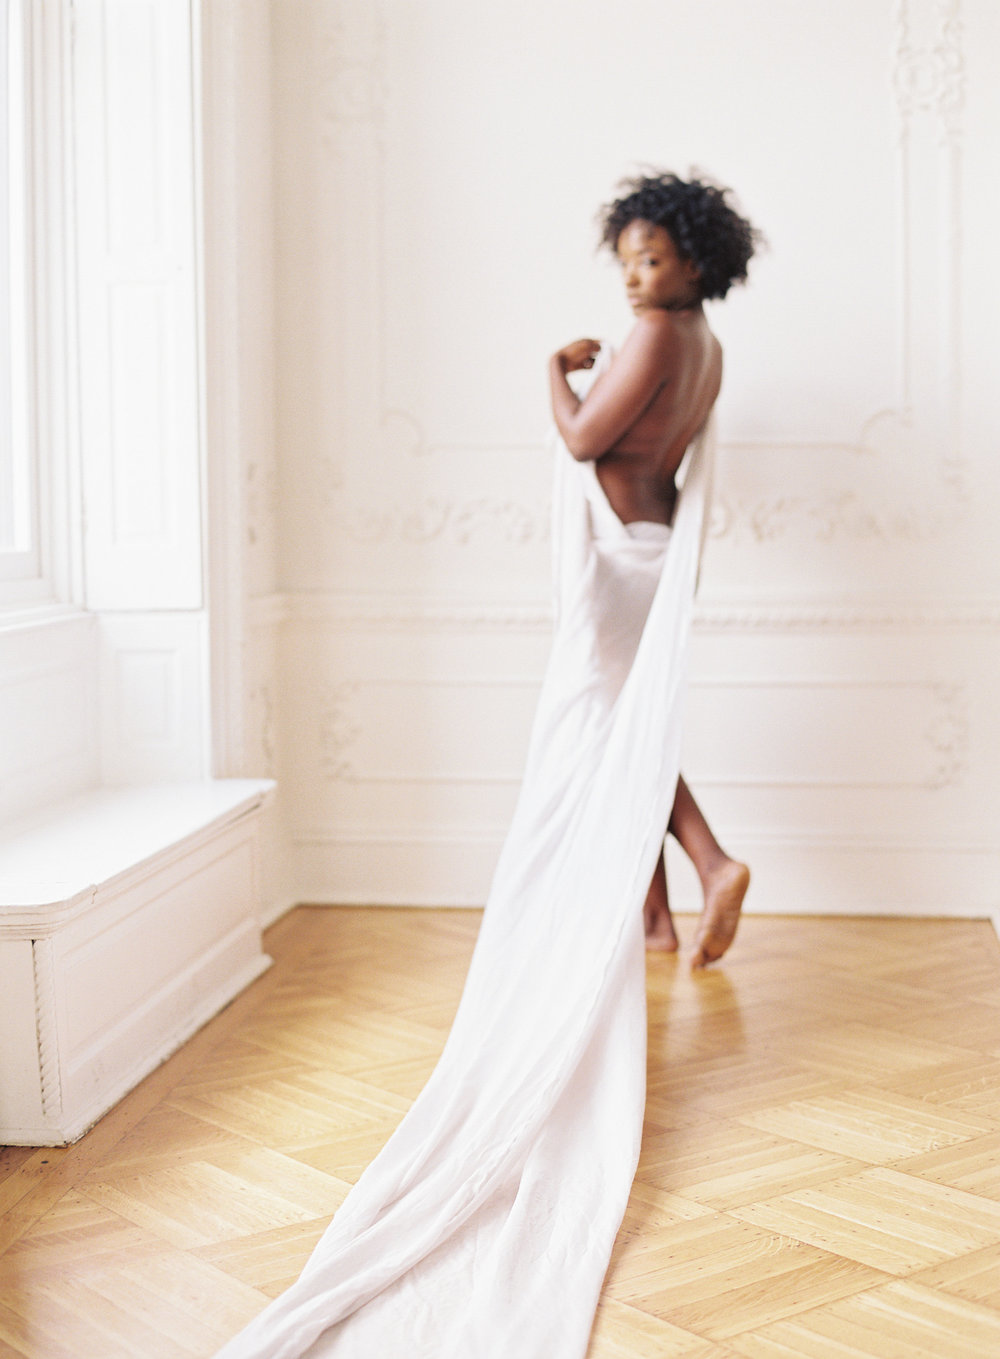 Minimal boudoir photoshoot at the Elephant Restaurant Baltimore with Michael and Carina Photography and fine art luxury wedding planner and stylist East Made Event Company-0010.jpg